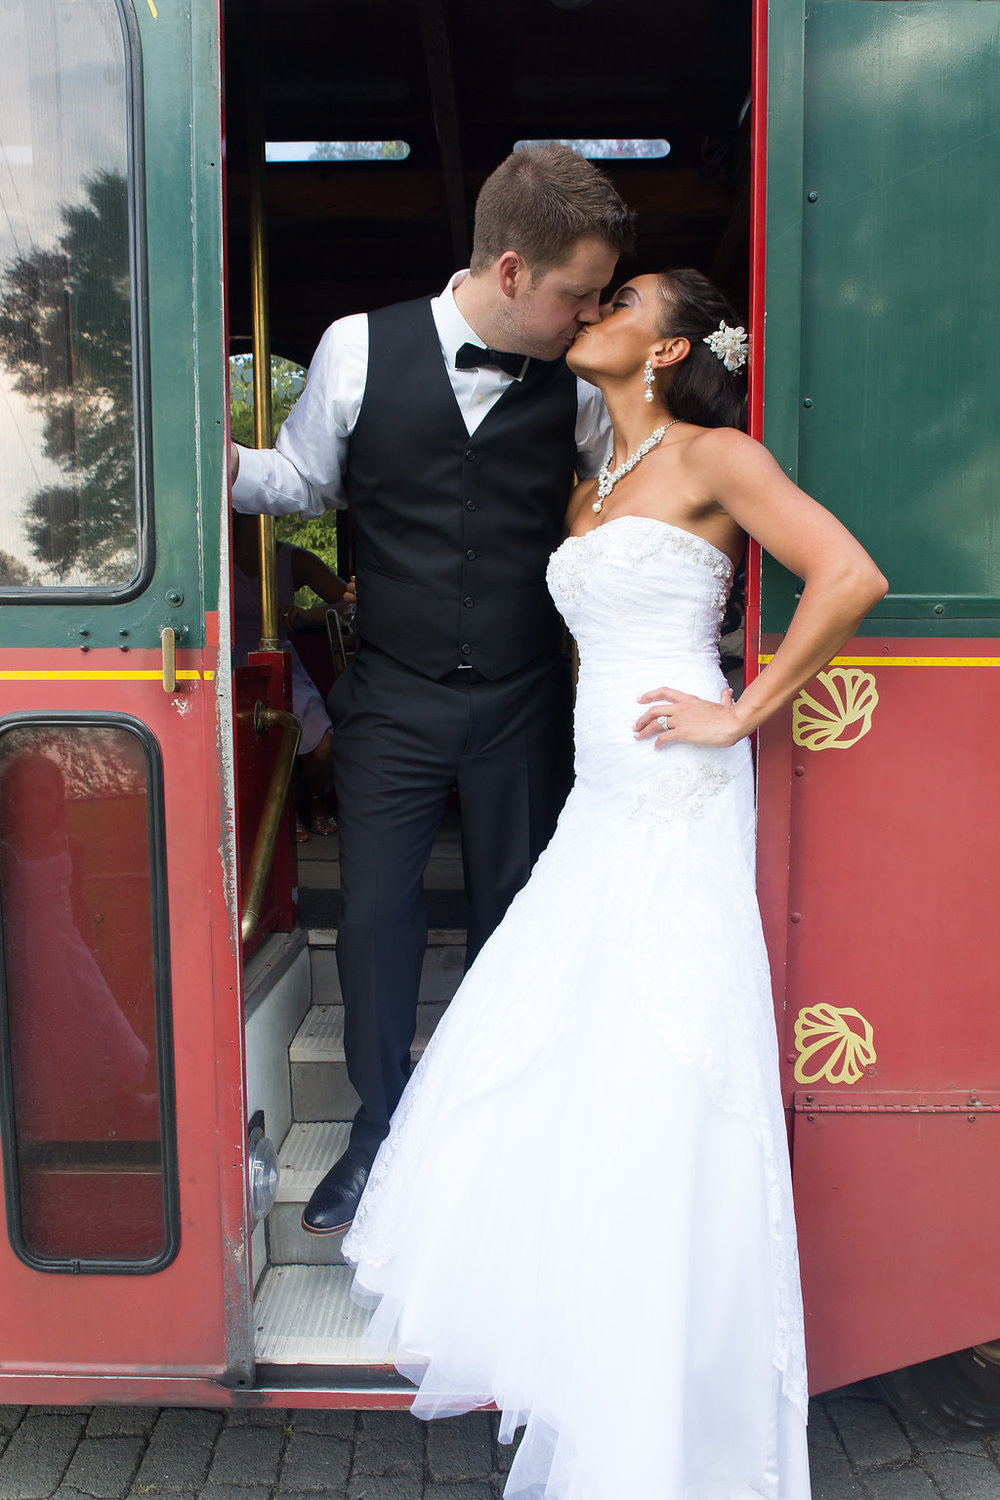 Megan Dickerson Wedding Photography North Carolina kiss on trolley car steps